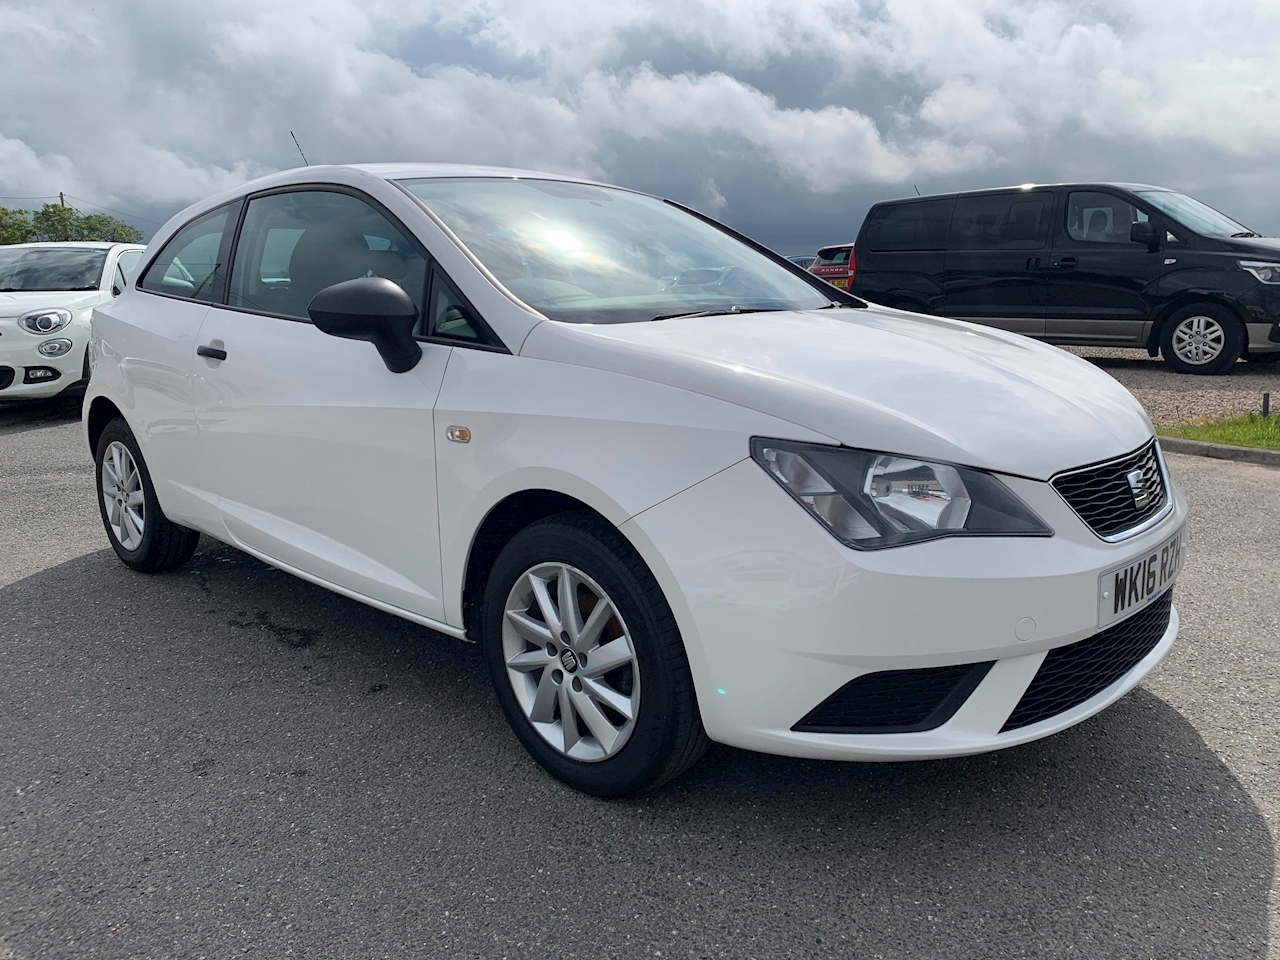 Ibiza Sol Hatchback 1.0 Manual Petrol